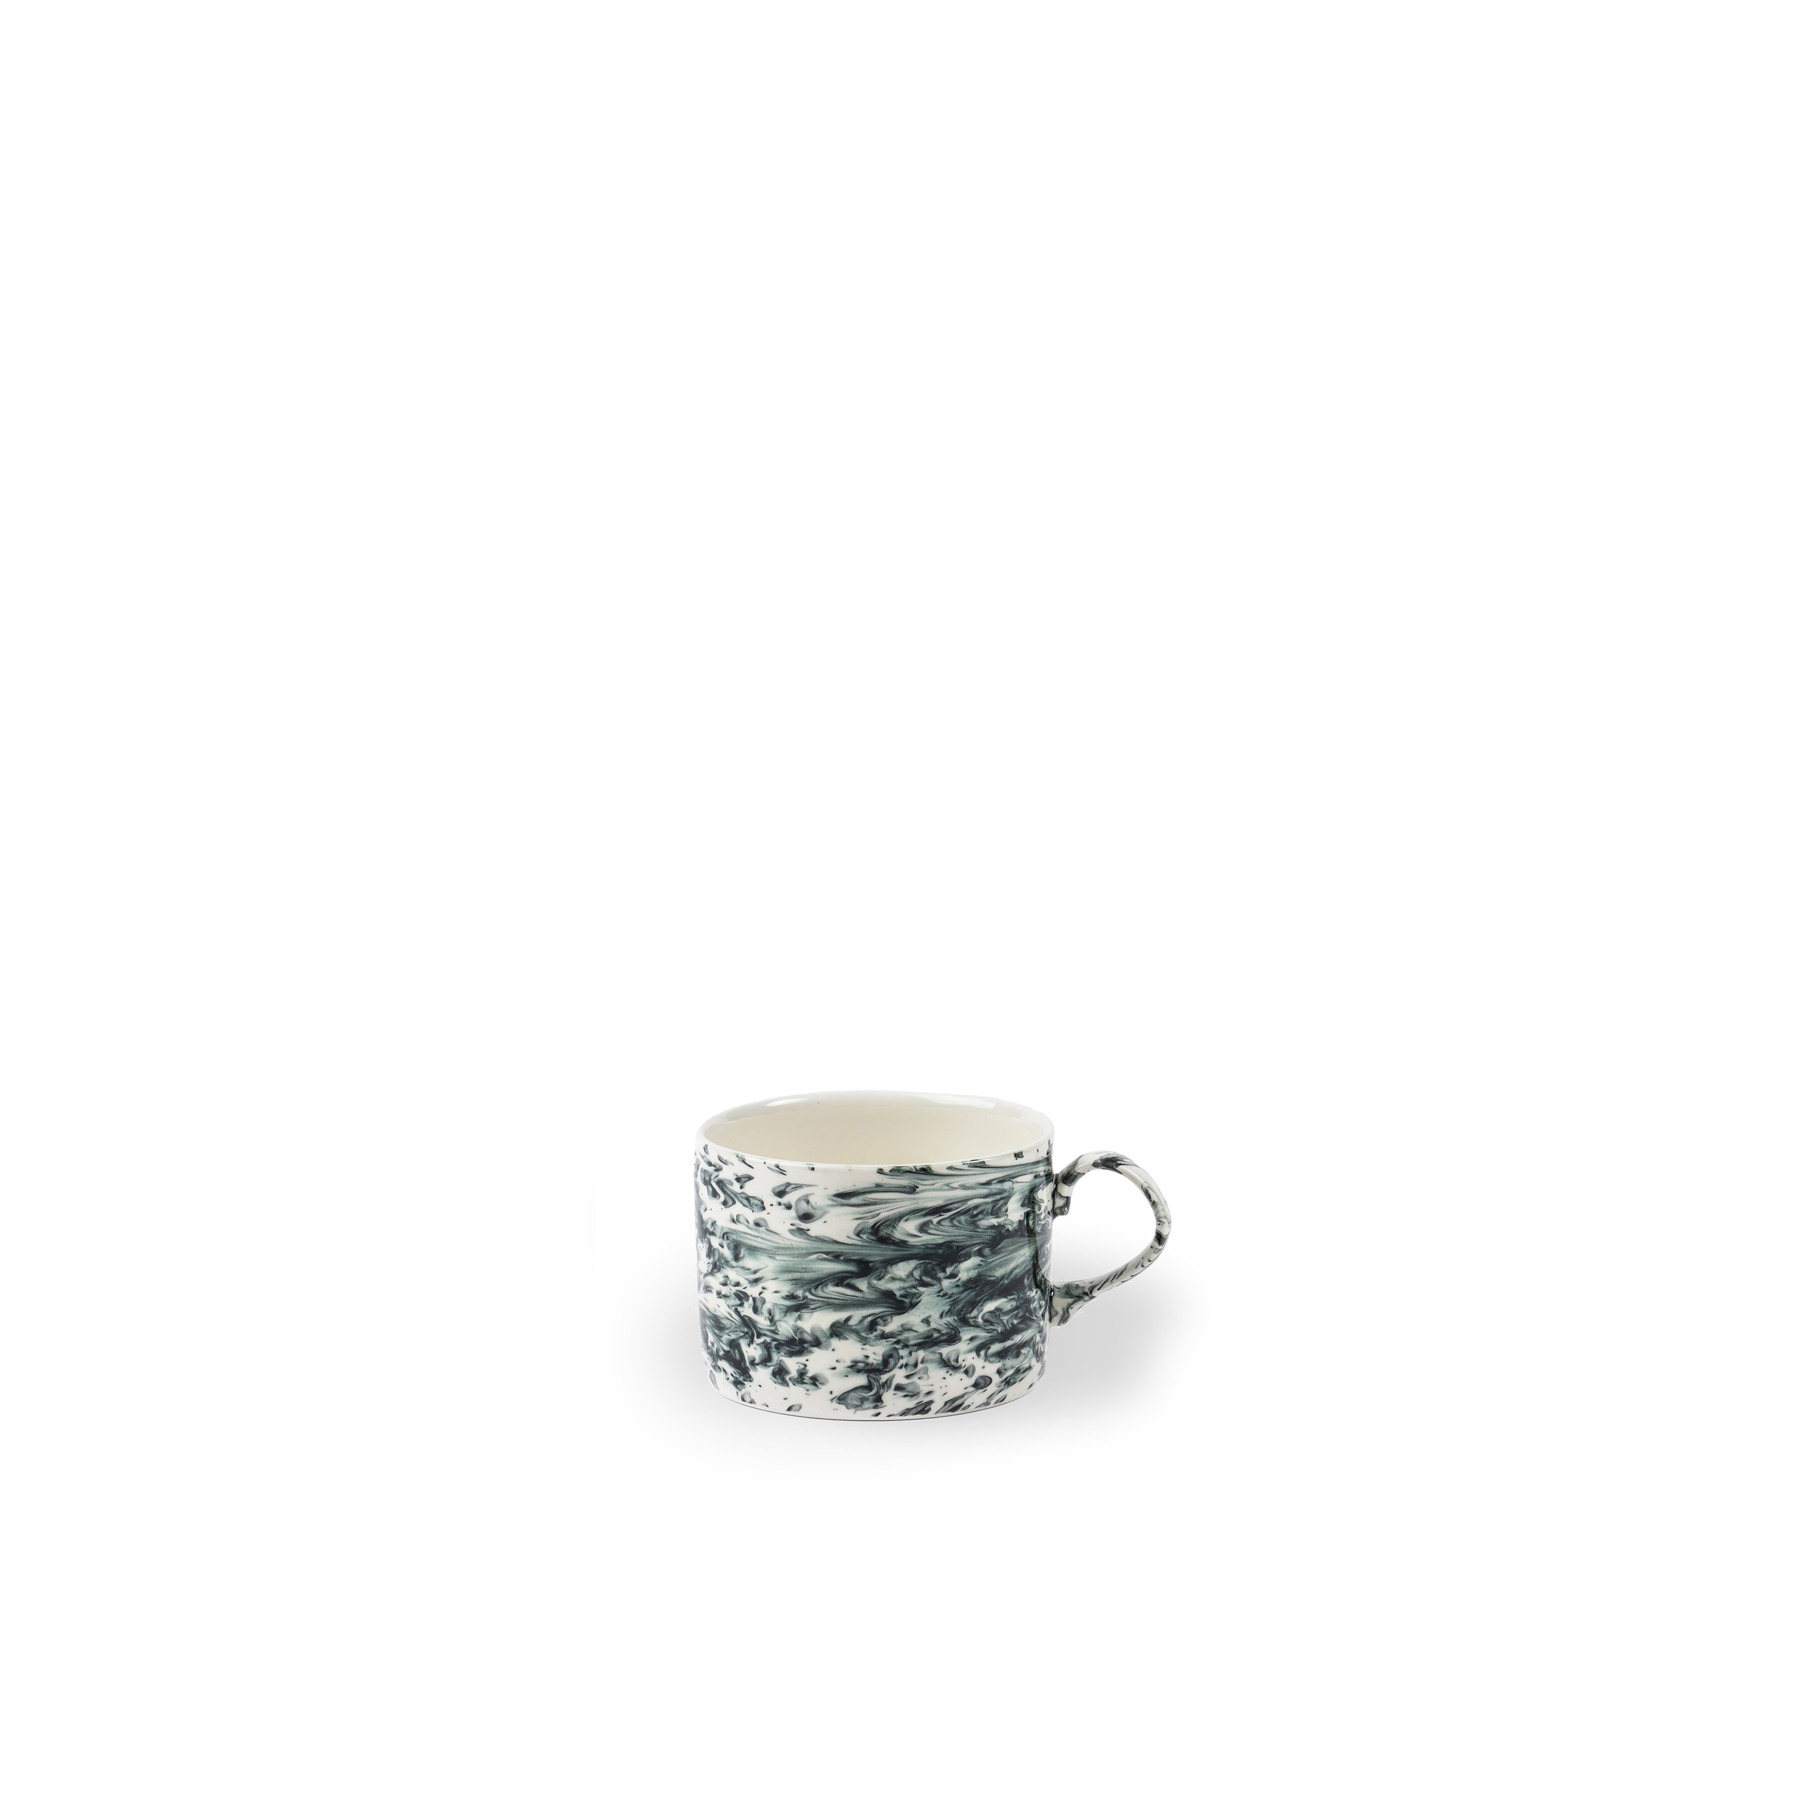 Slick Mug - Slick by 1882 Ltd. is a collection of uniquely hand glazed tableware – a true testament to the skill of the Potter. So many factors make up the pattern of the glaze; from the heat of the piece to the weight of the glaze. The Potter works each piece individually making each item unique.  Made in England. Microwave and dishwasher safe.  | Matter of Stuff